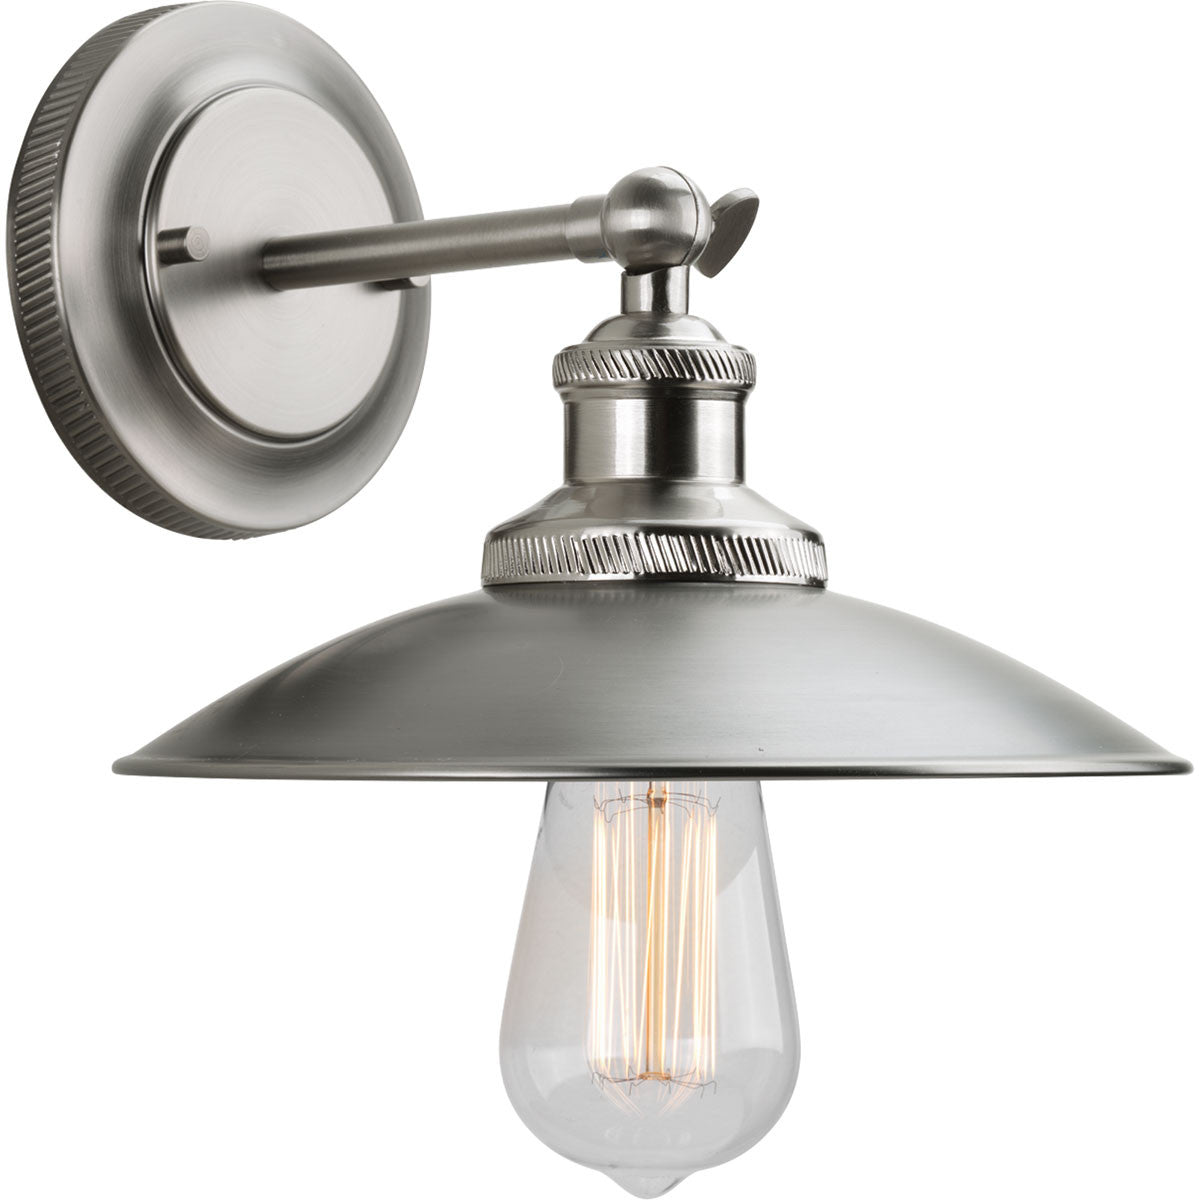 Archives Wall Sconce in Antique Nickel with Brushed Nickel Accents by Progress Lighting P7156-81